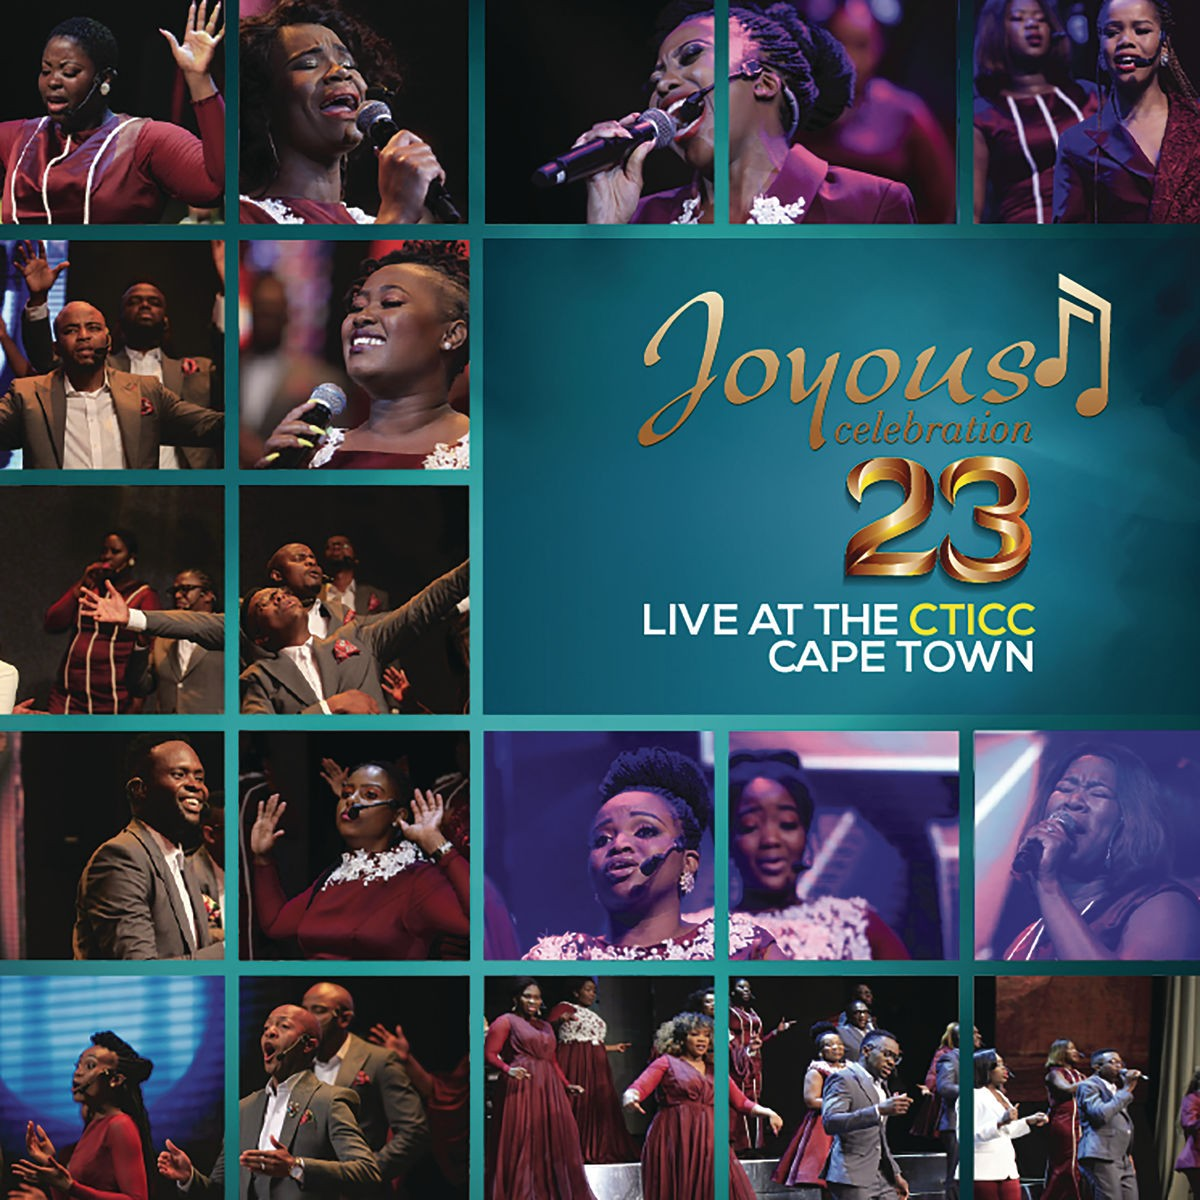 Joyous Celebration - 23 - Live At The CTICC Cape Town CD - CDPAR5115